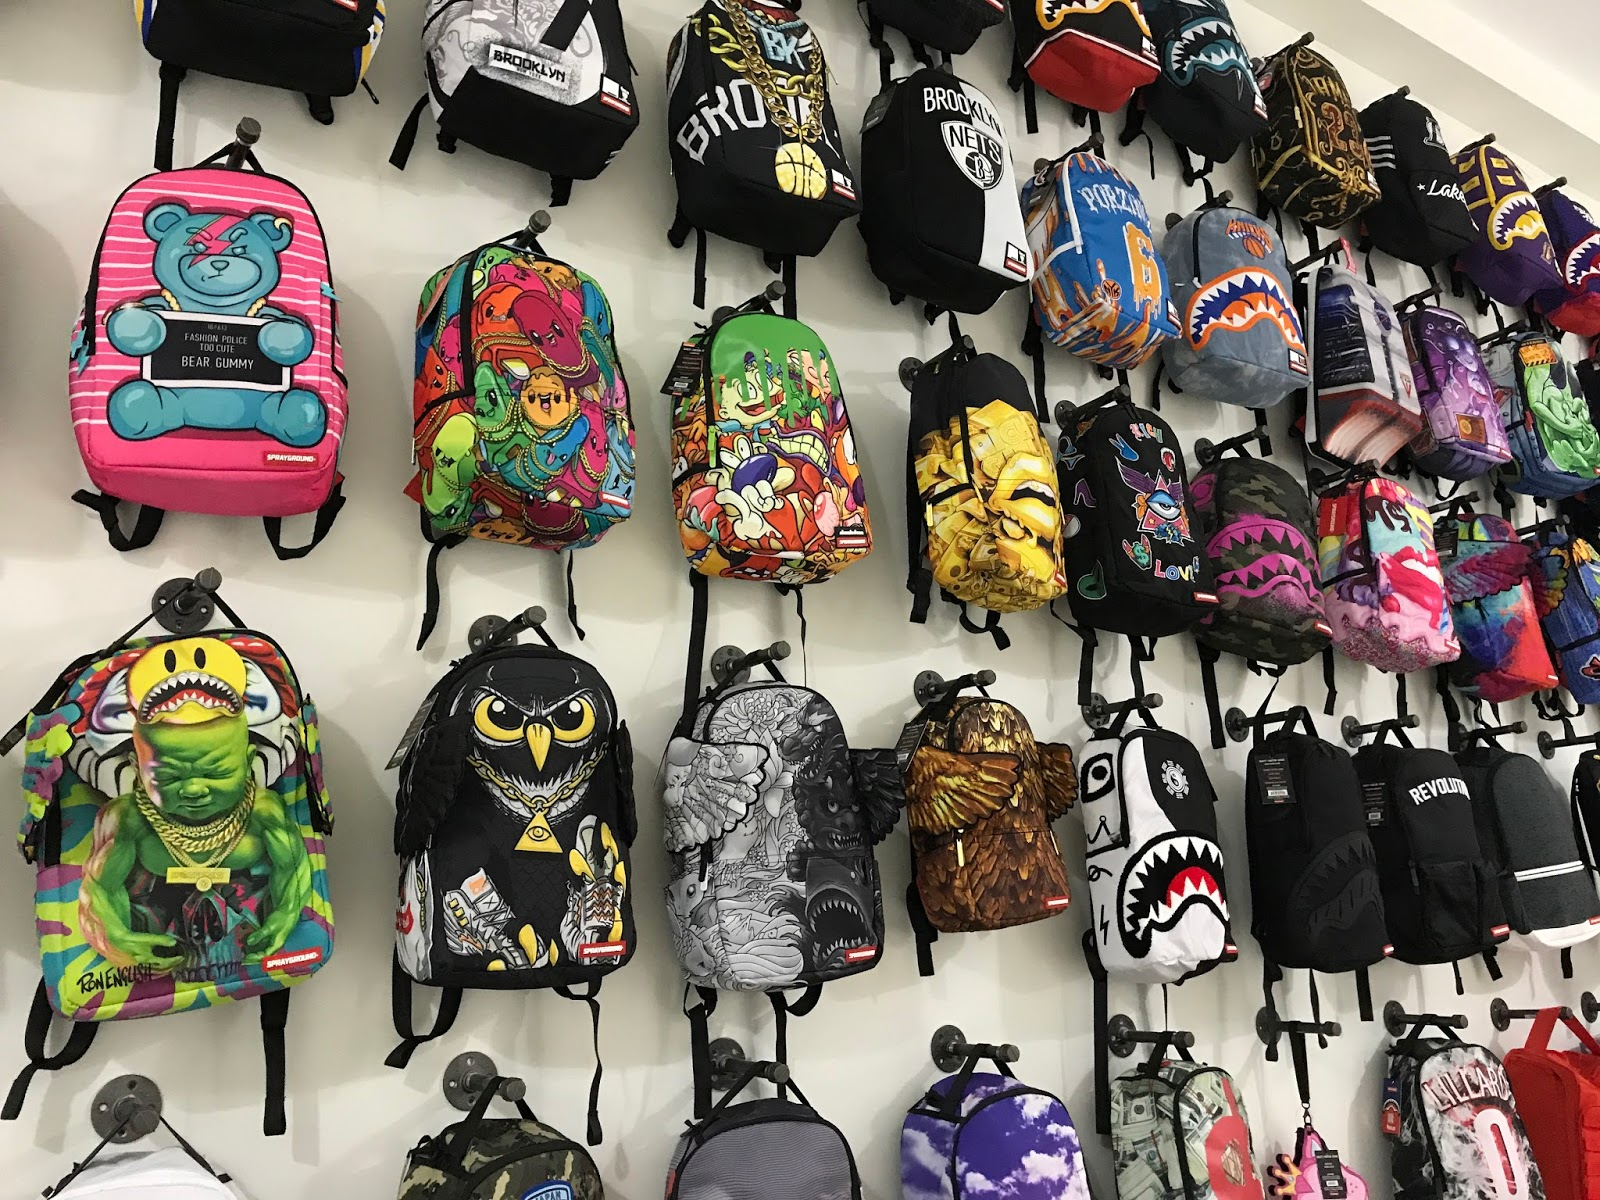 171b0e096 ... Sprayground pop-up shop in soho, NYC. I had the opportunity to check it  out on the opening day and even got a bag that was sold out online for a  really, ...